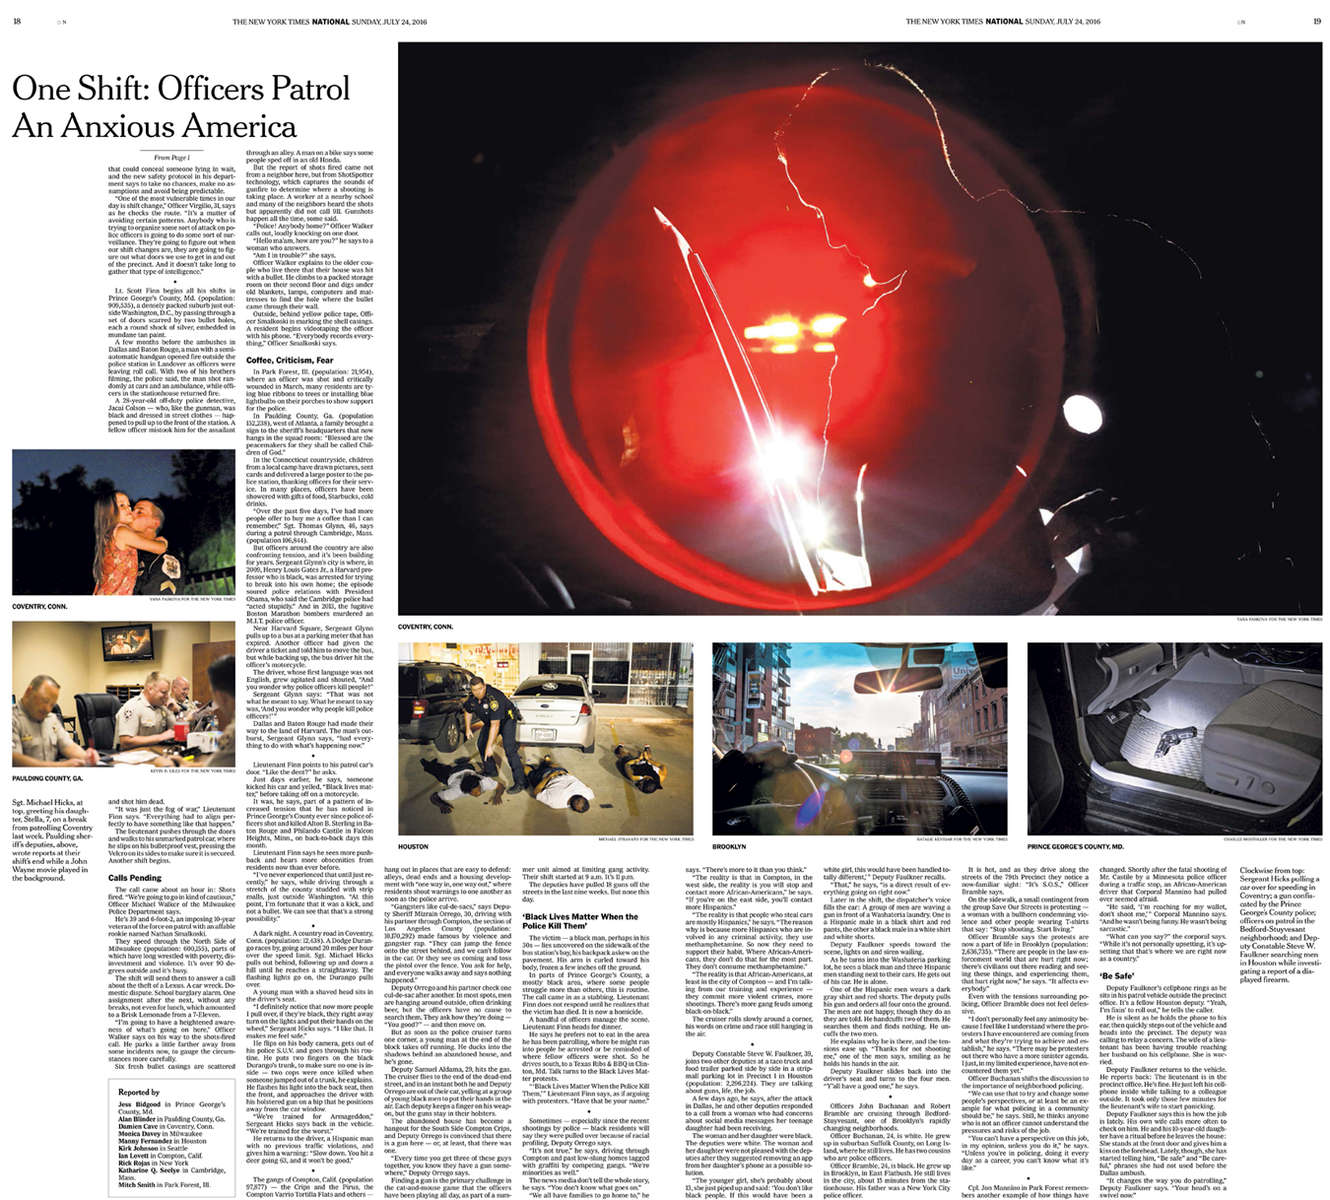 The New York Times National Section front (main photo on top right of page + smaller photo on top left)